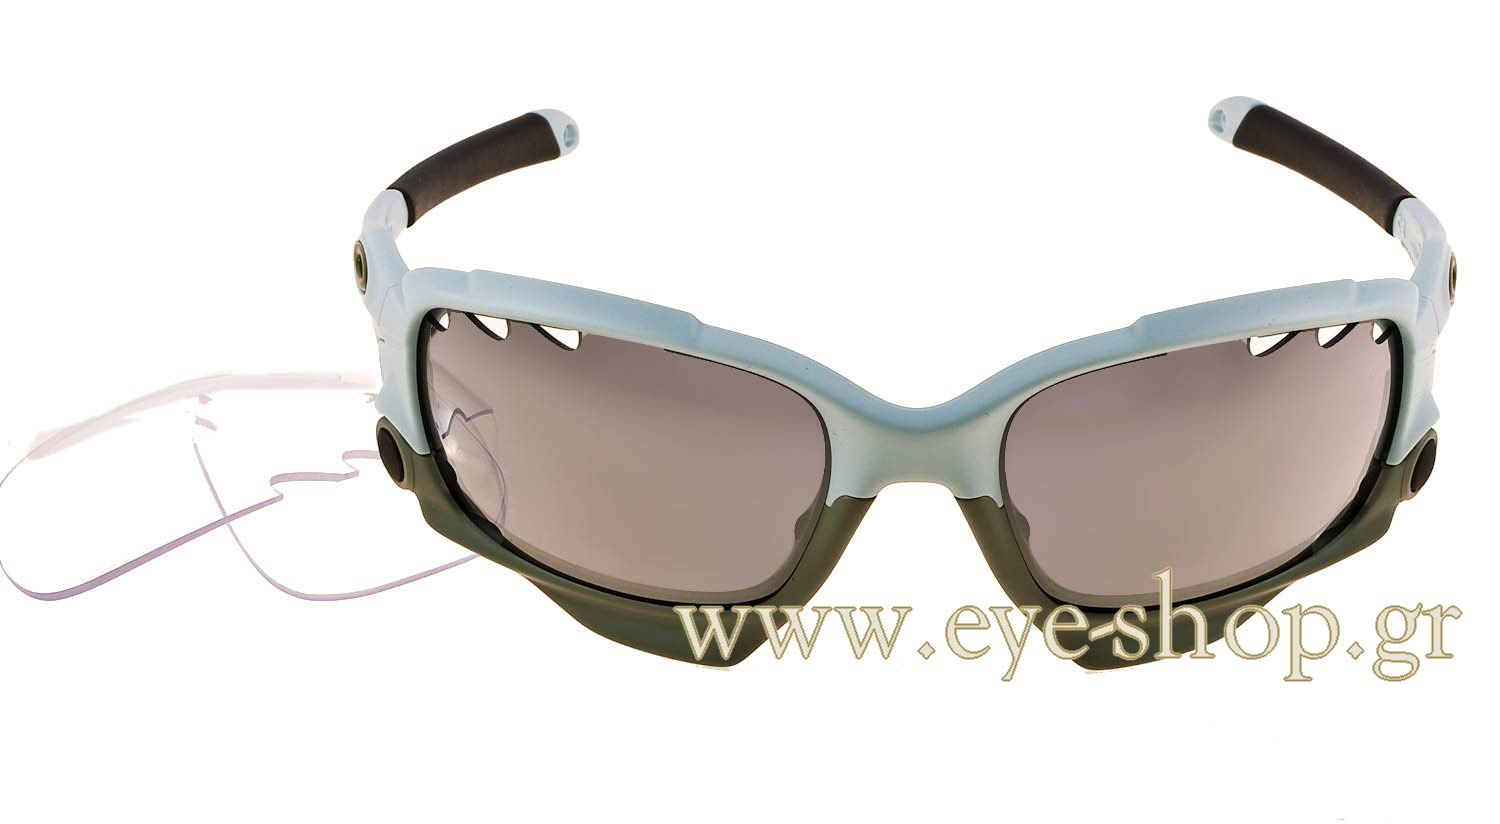 8fafec8cc7b Oakley Sunglasses Special South Africa